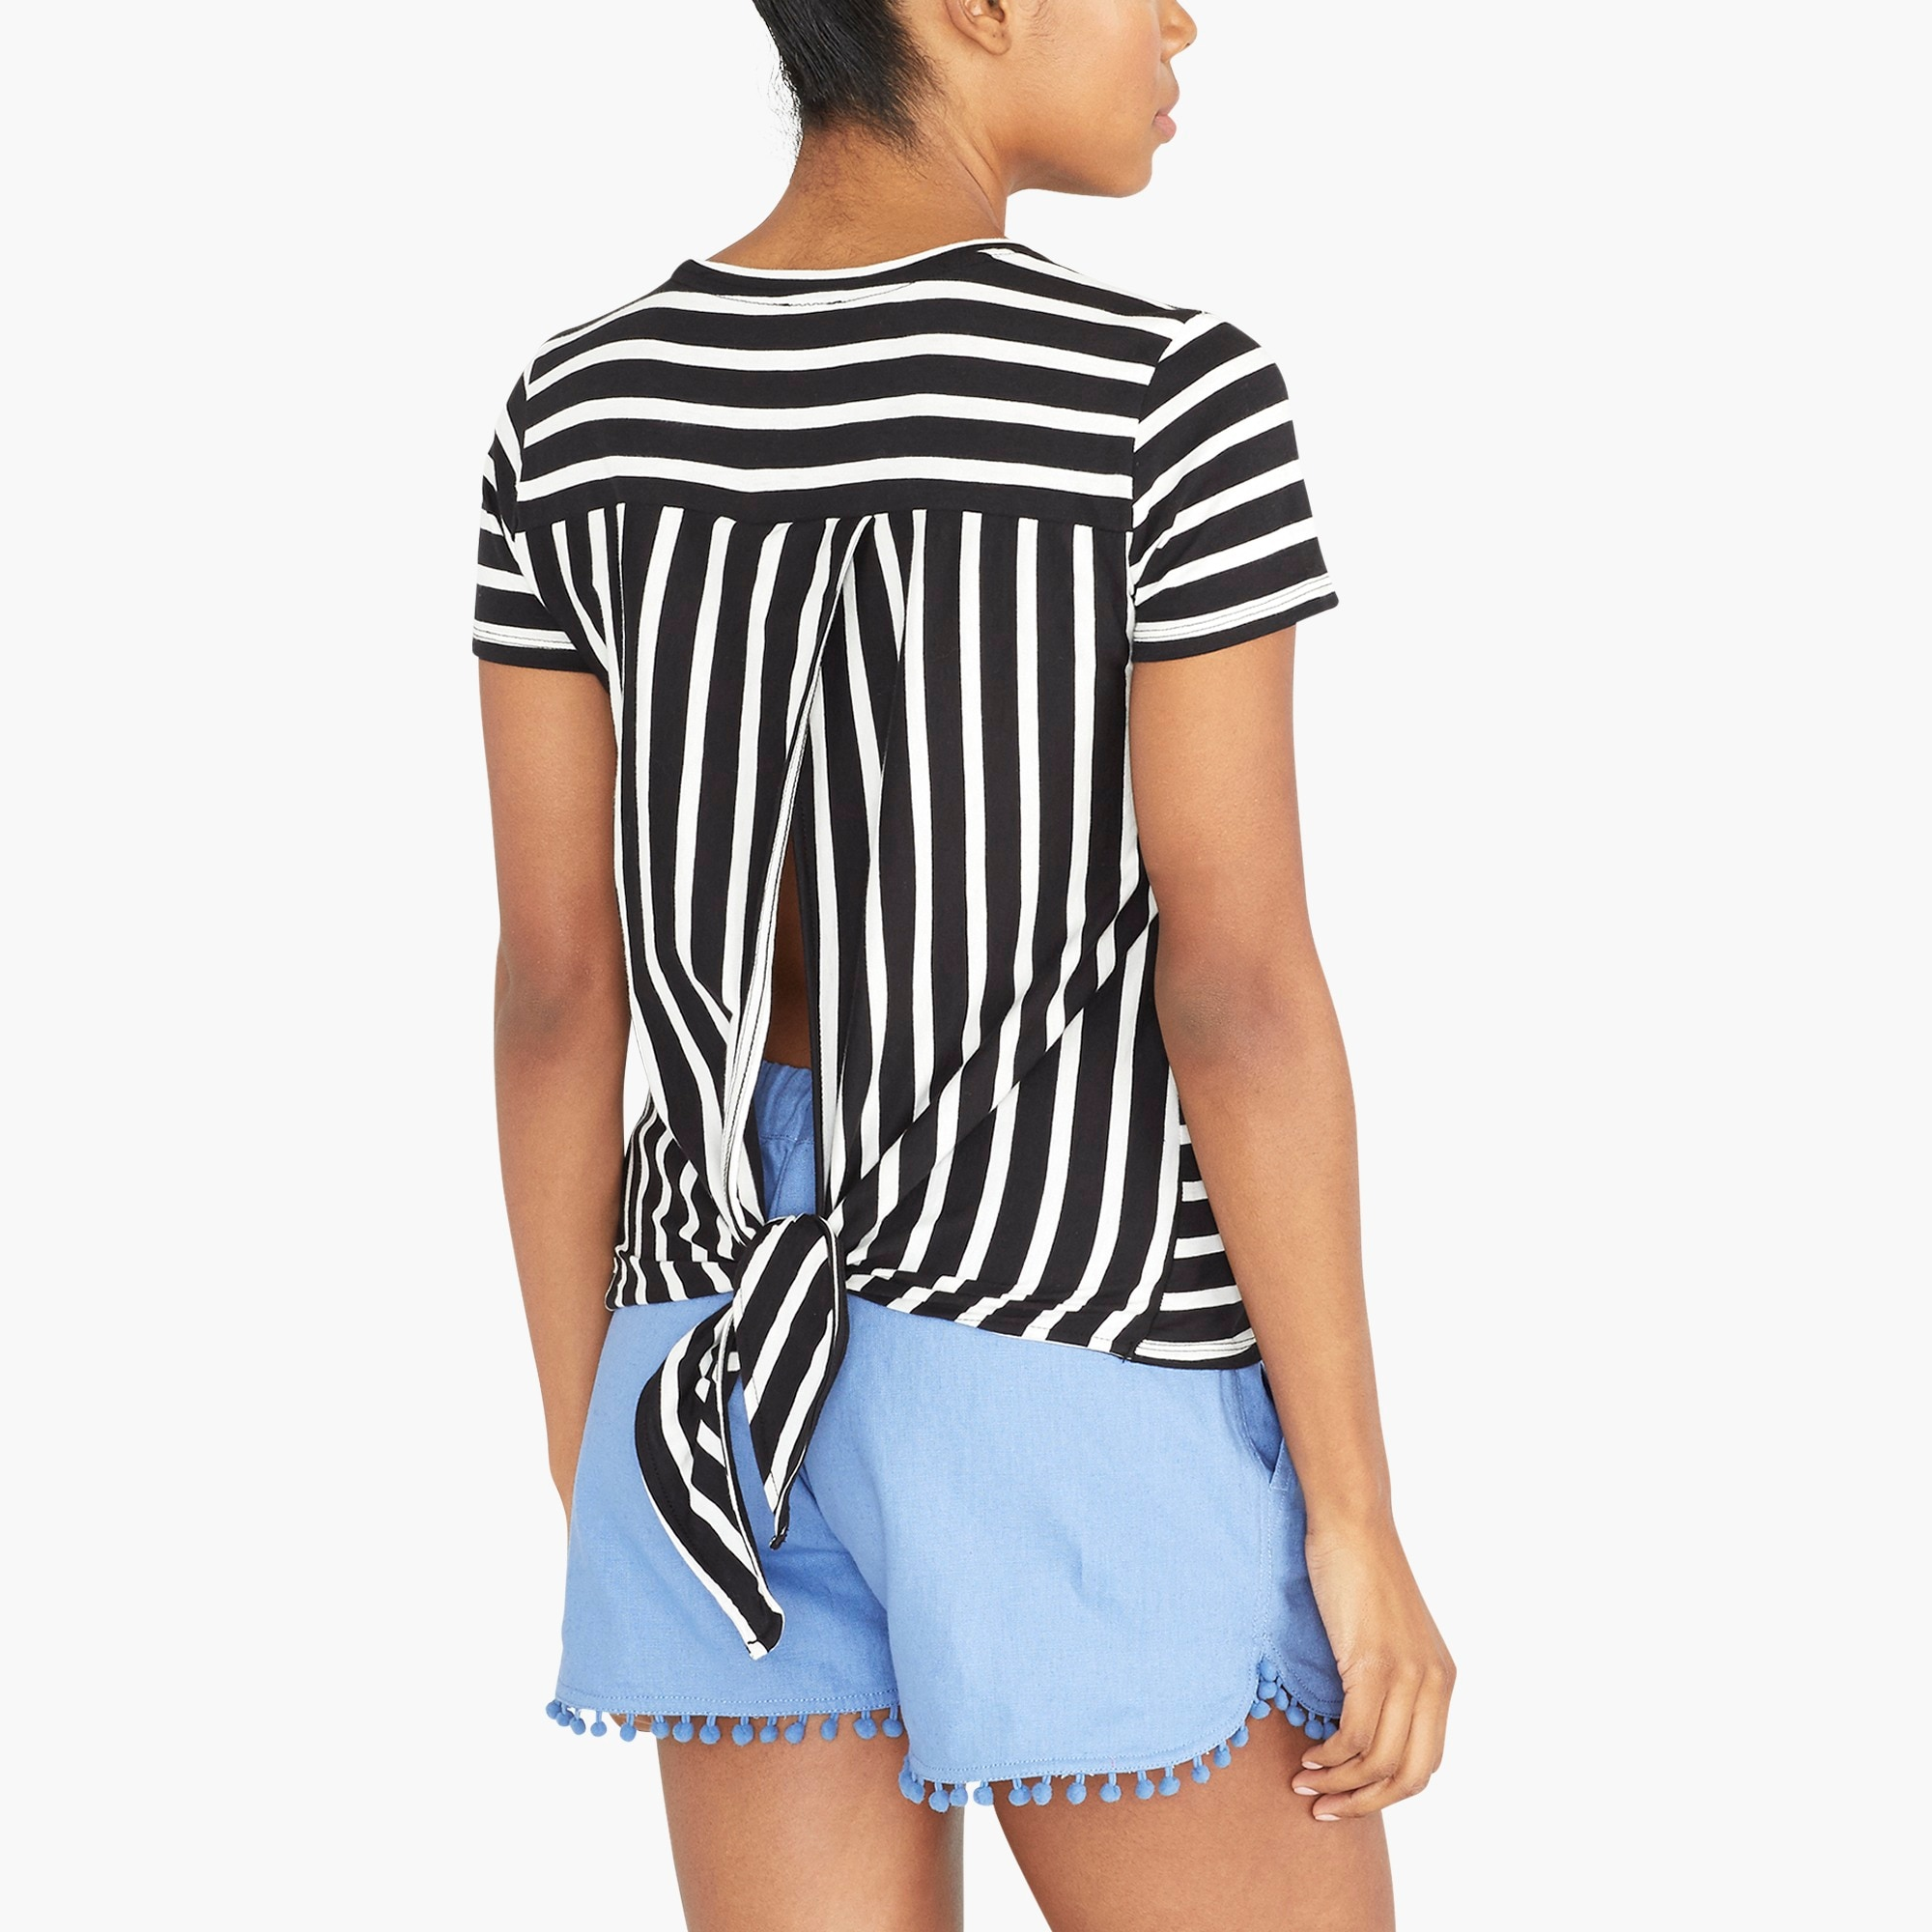 Image 1 for Striped tie-back T-shirt